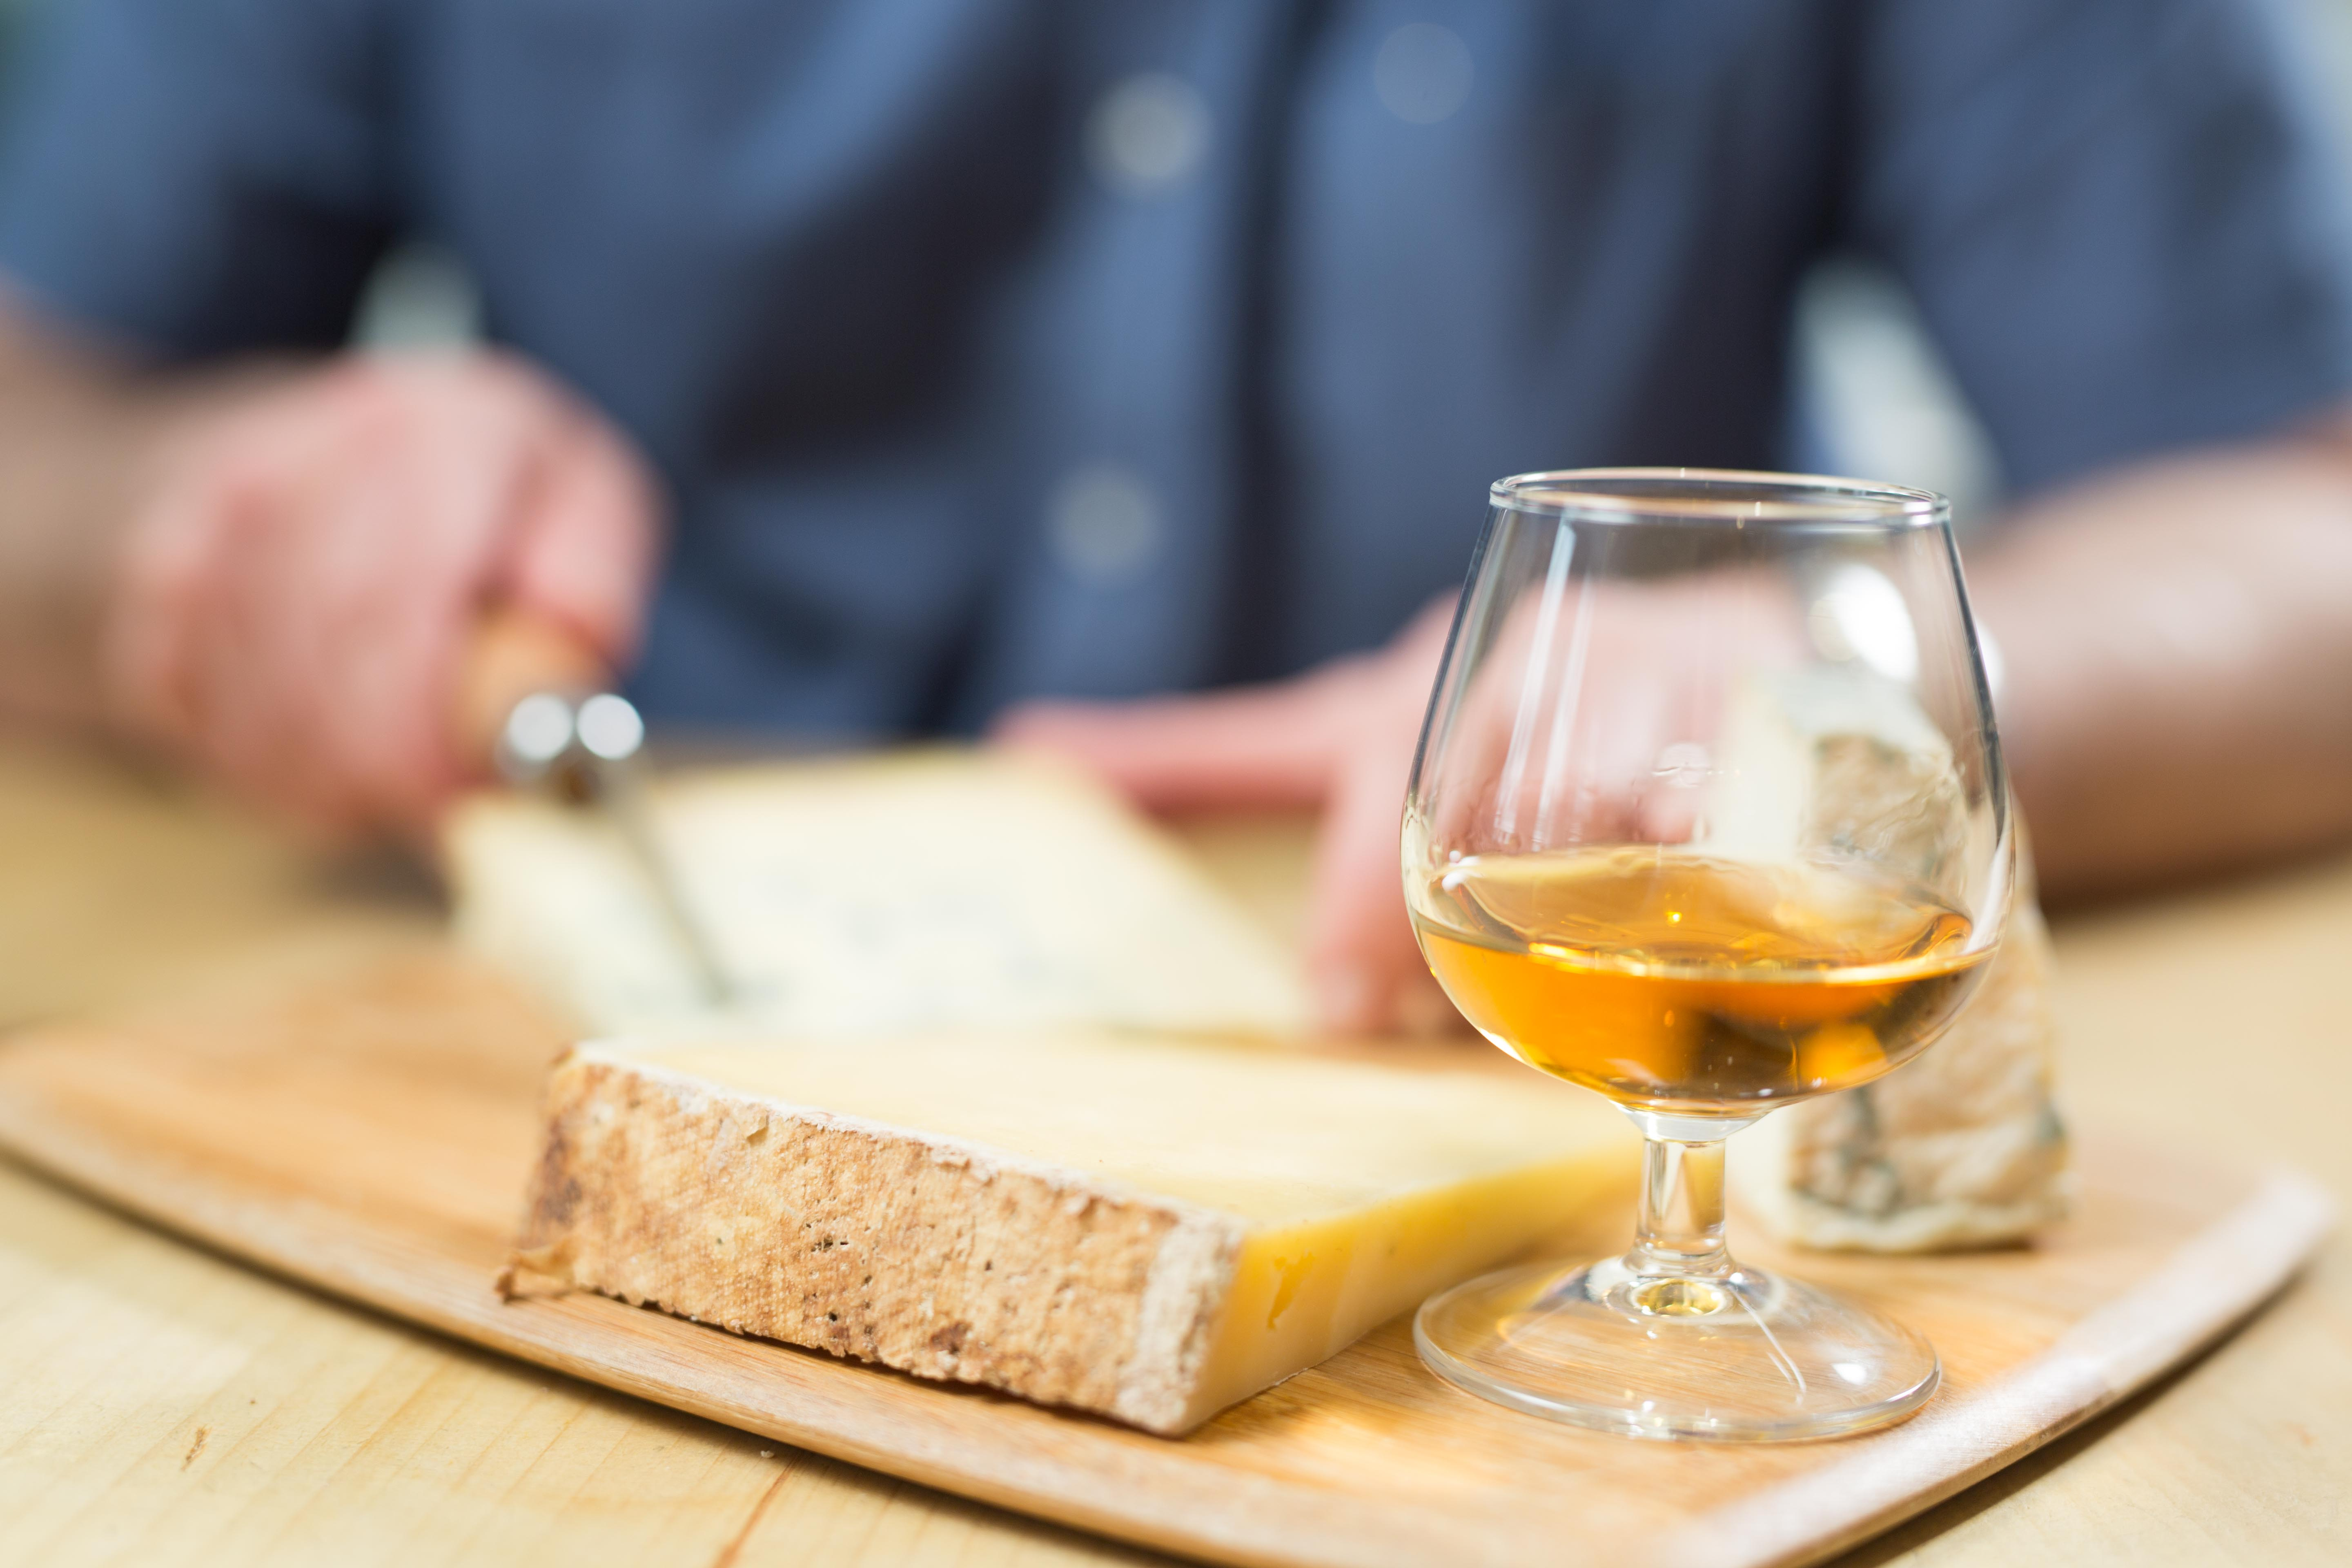 SMWS cheese and whisky